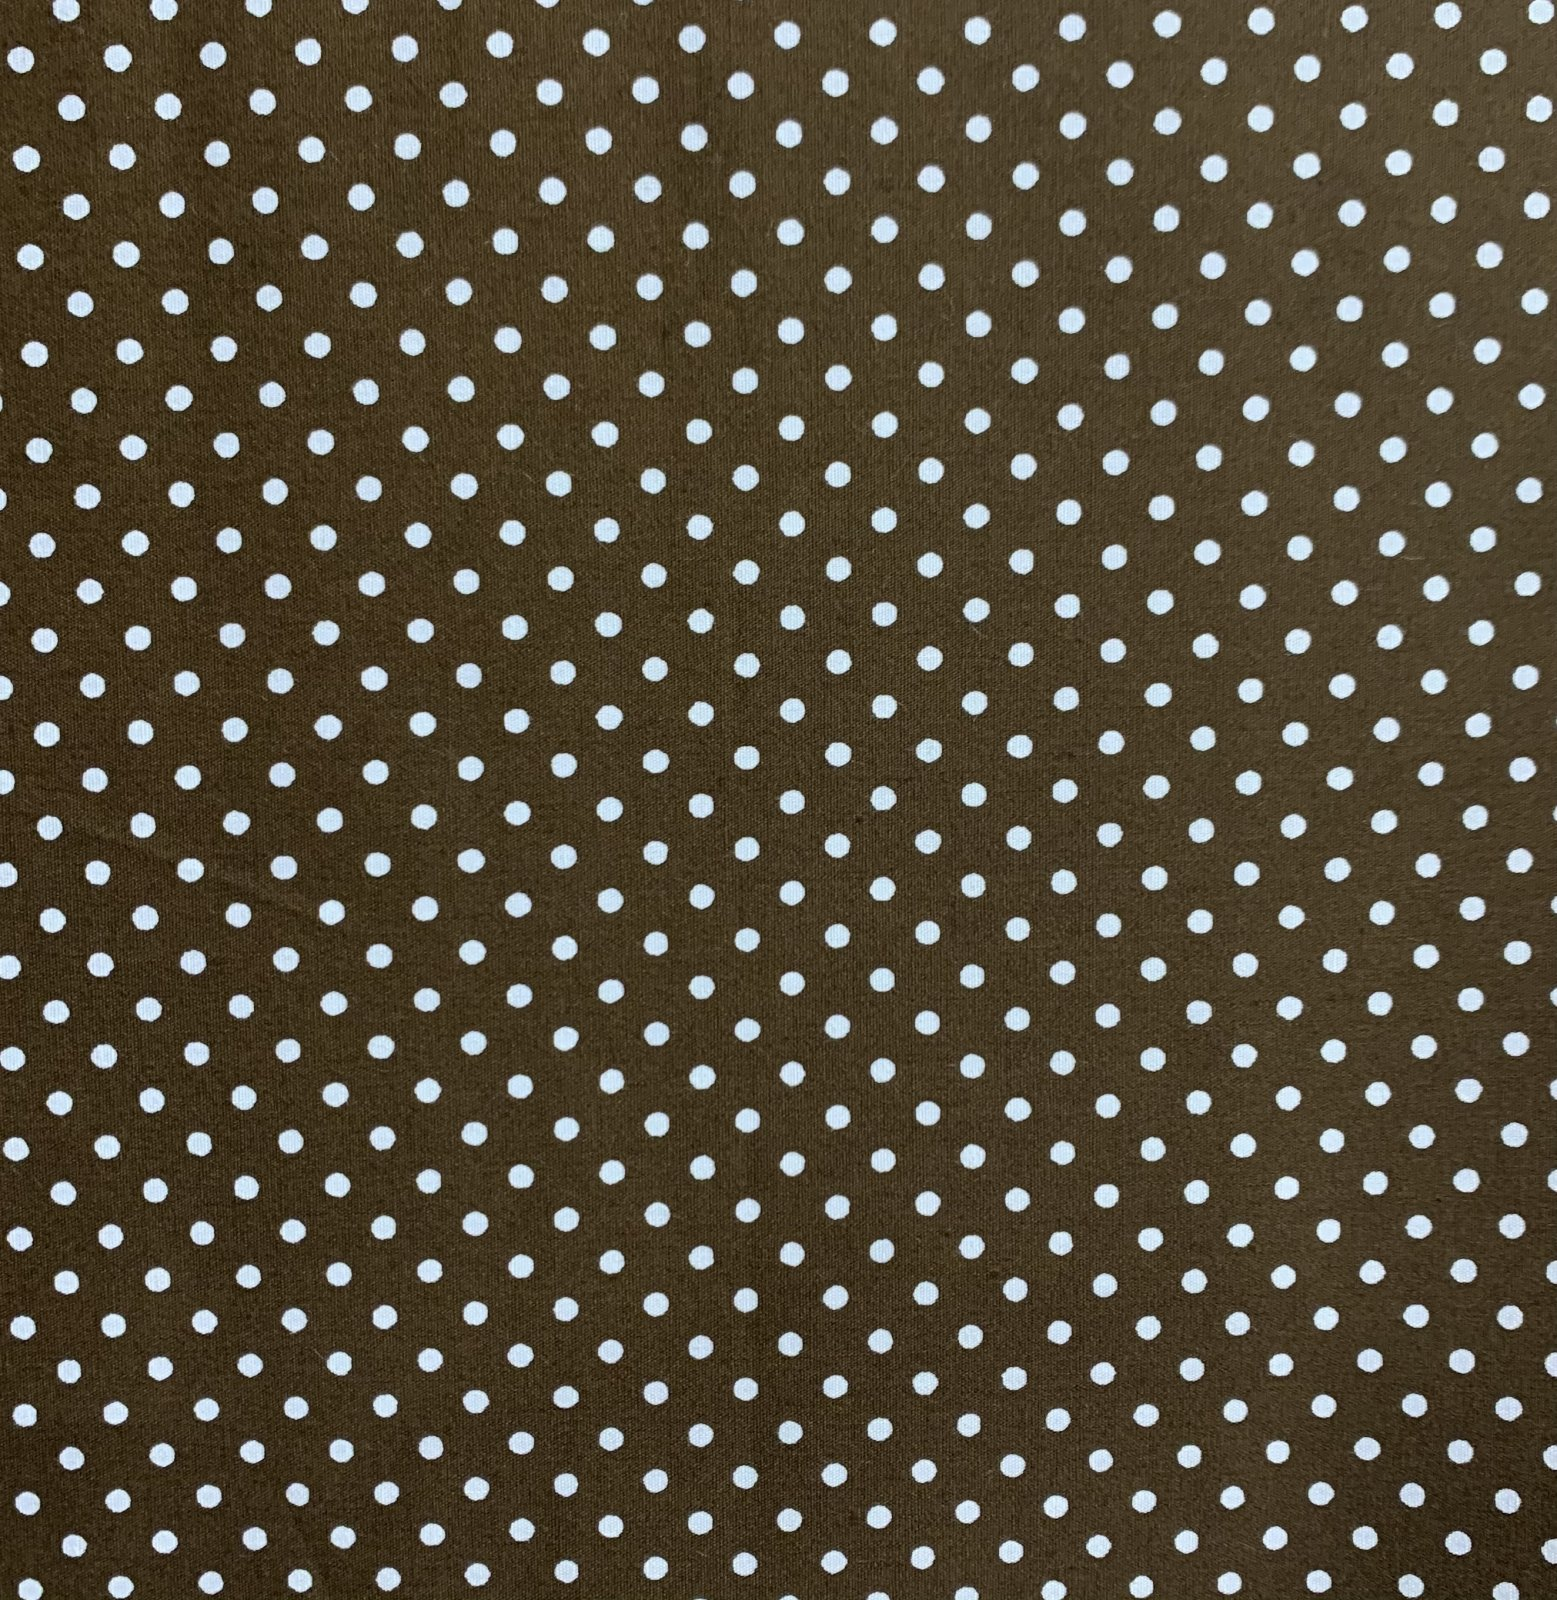 Japanese - Printed Poplin - Small Spots - Brown